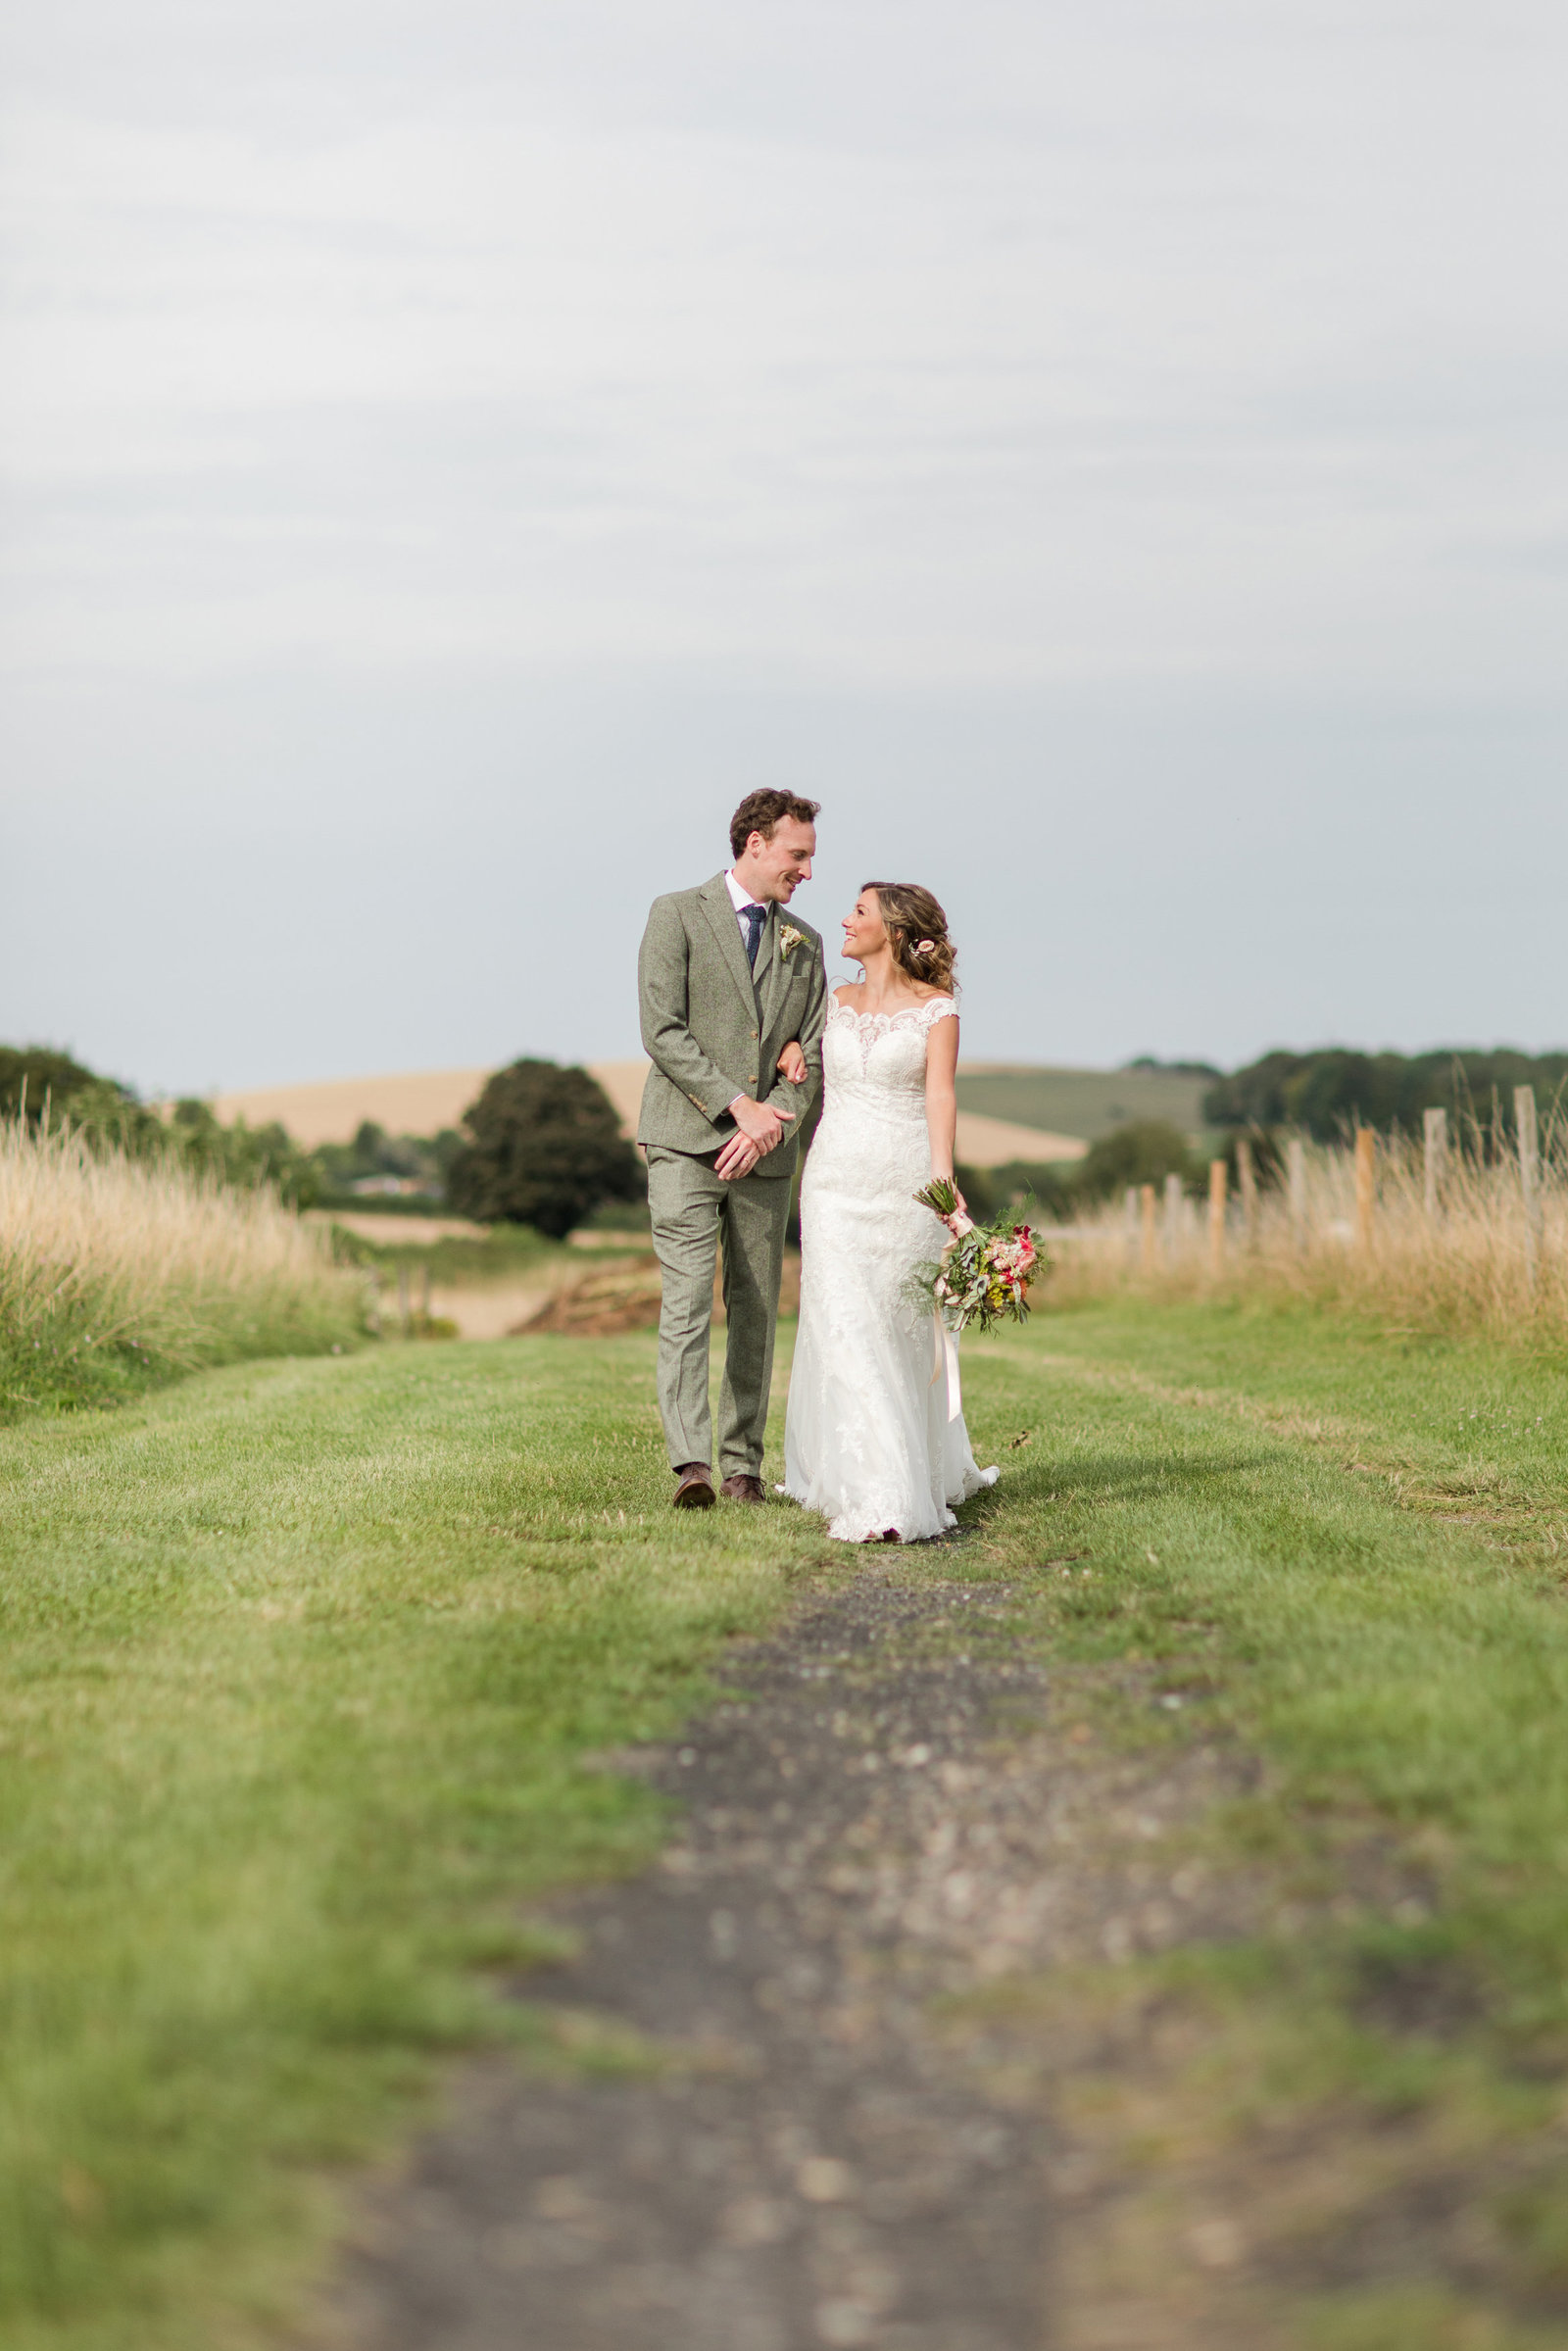 adorlee-129-KA-upwaltham-barns-wedding-photographer